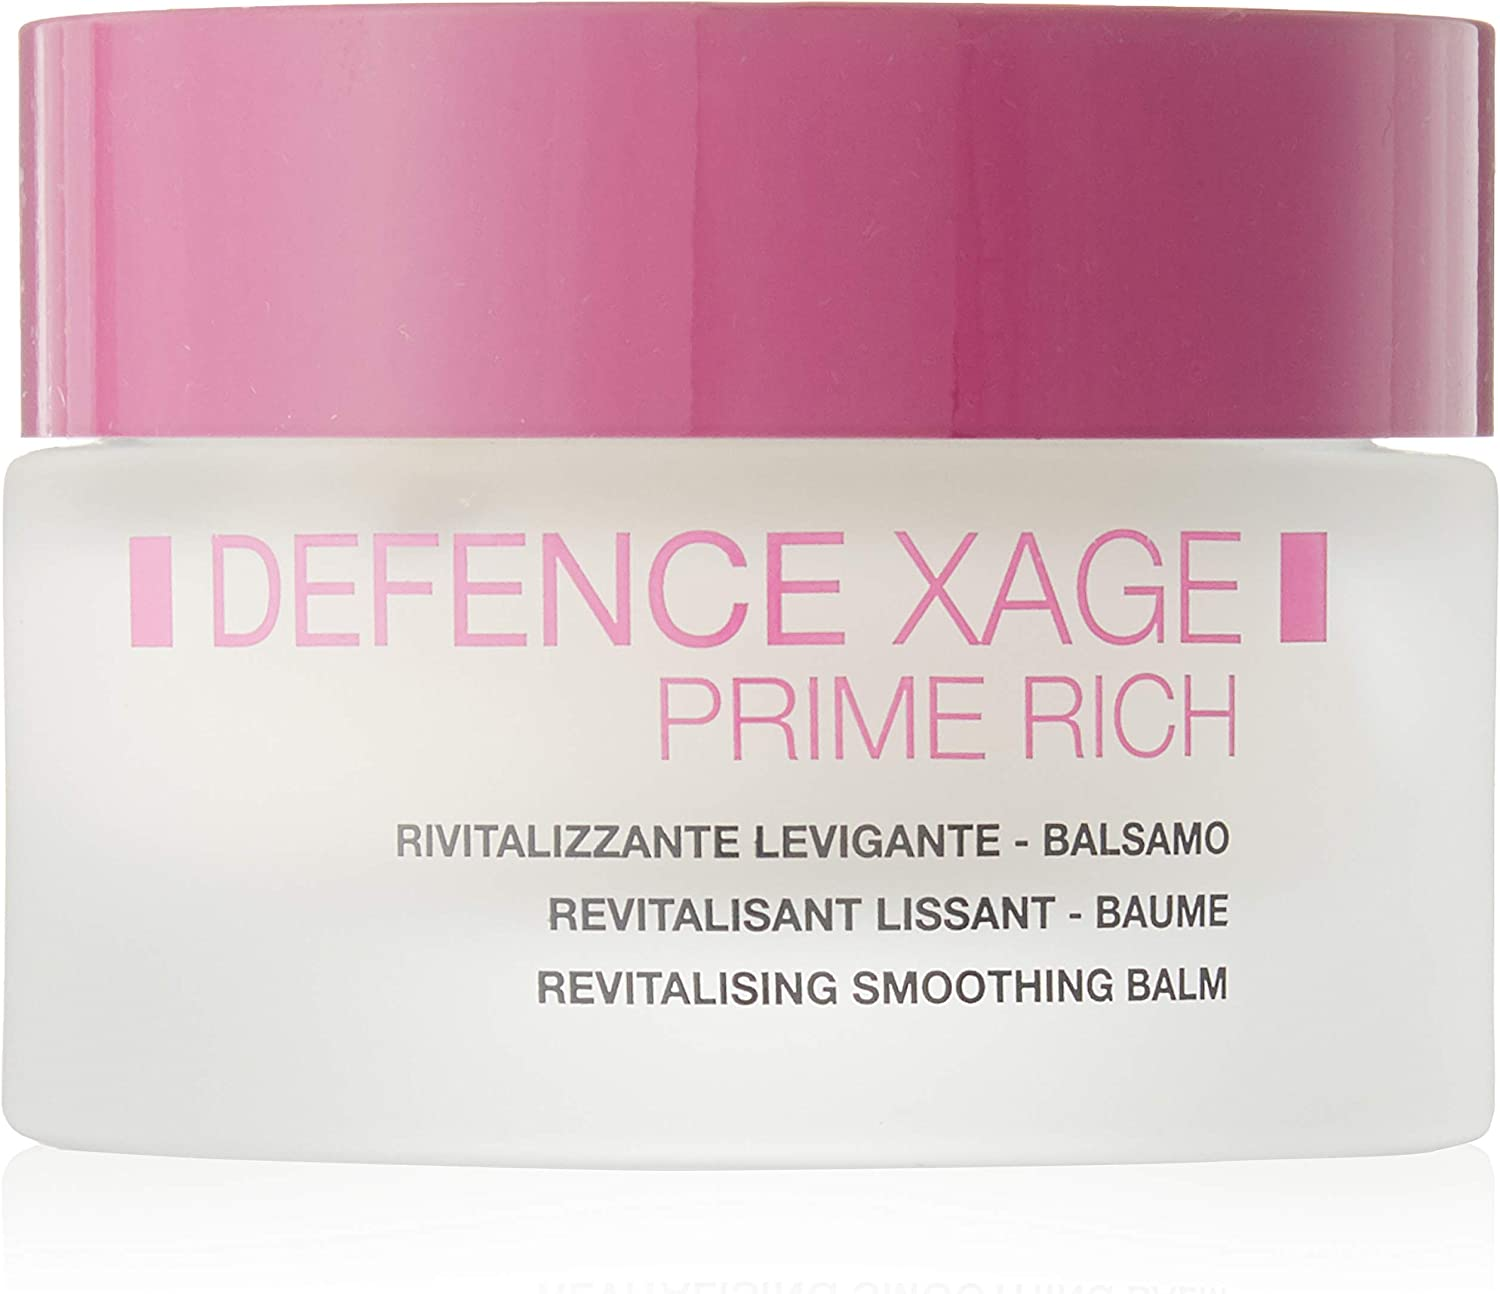 Defence Xage Prime Rich NEW before Special price for a limited time selling Smoothing 50ml Revitalizing Balm